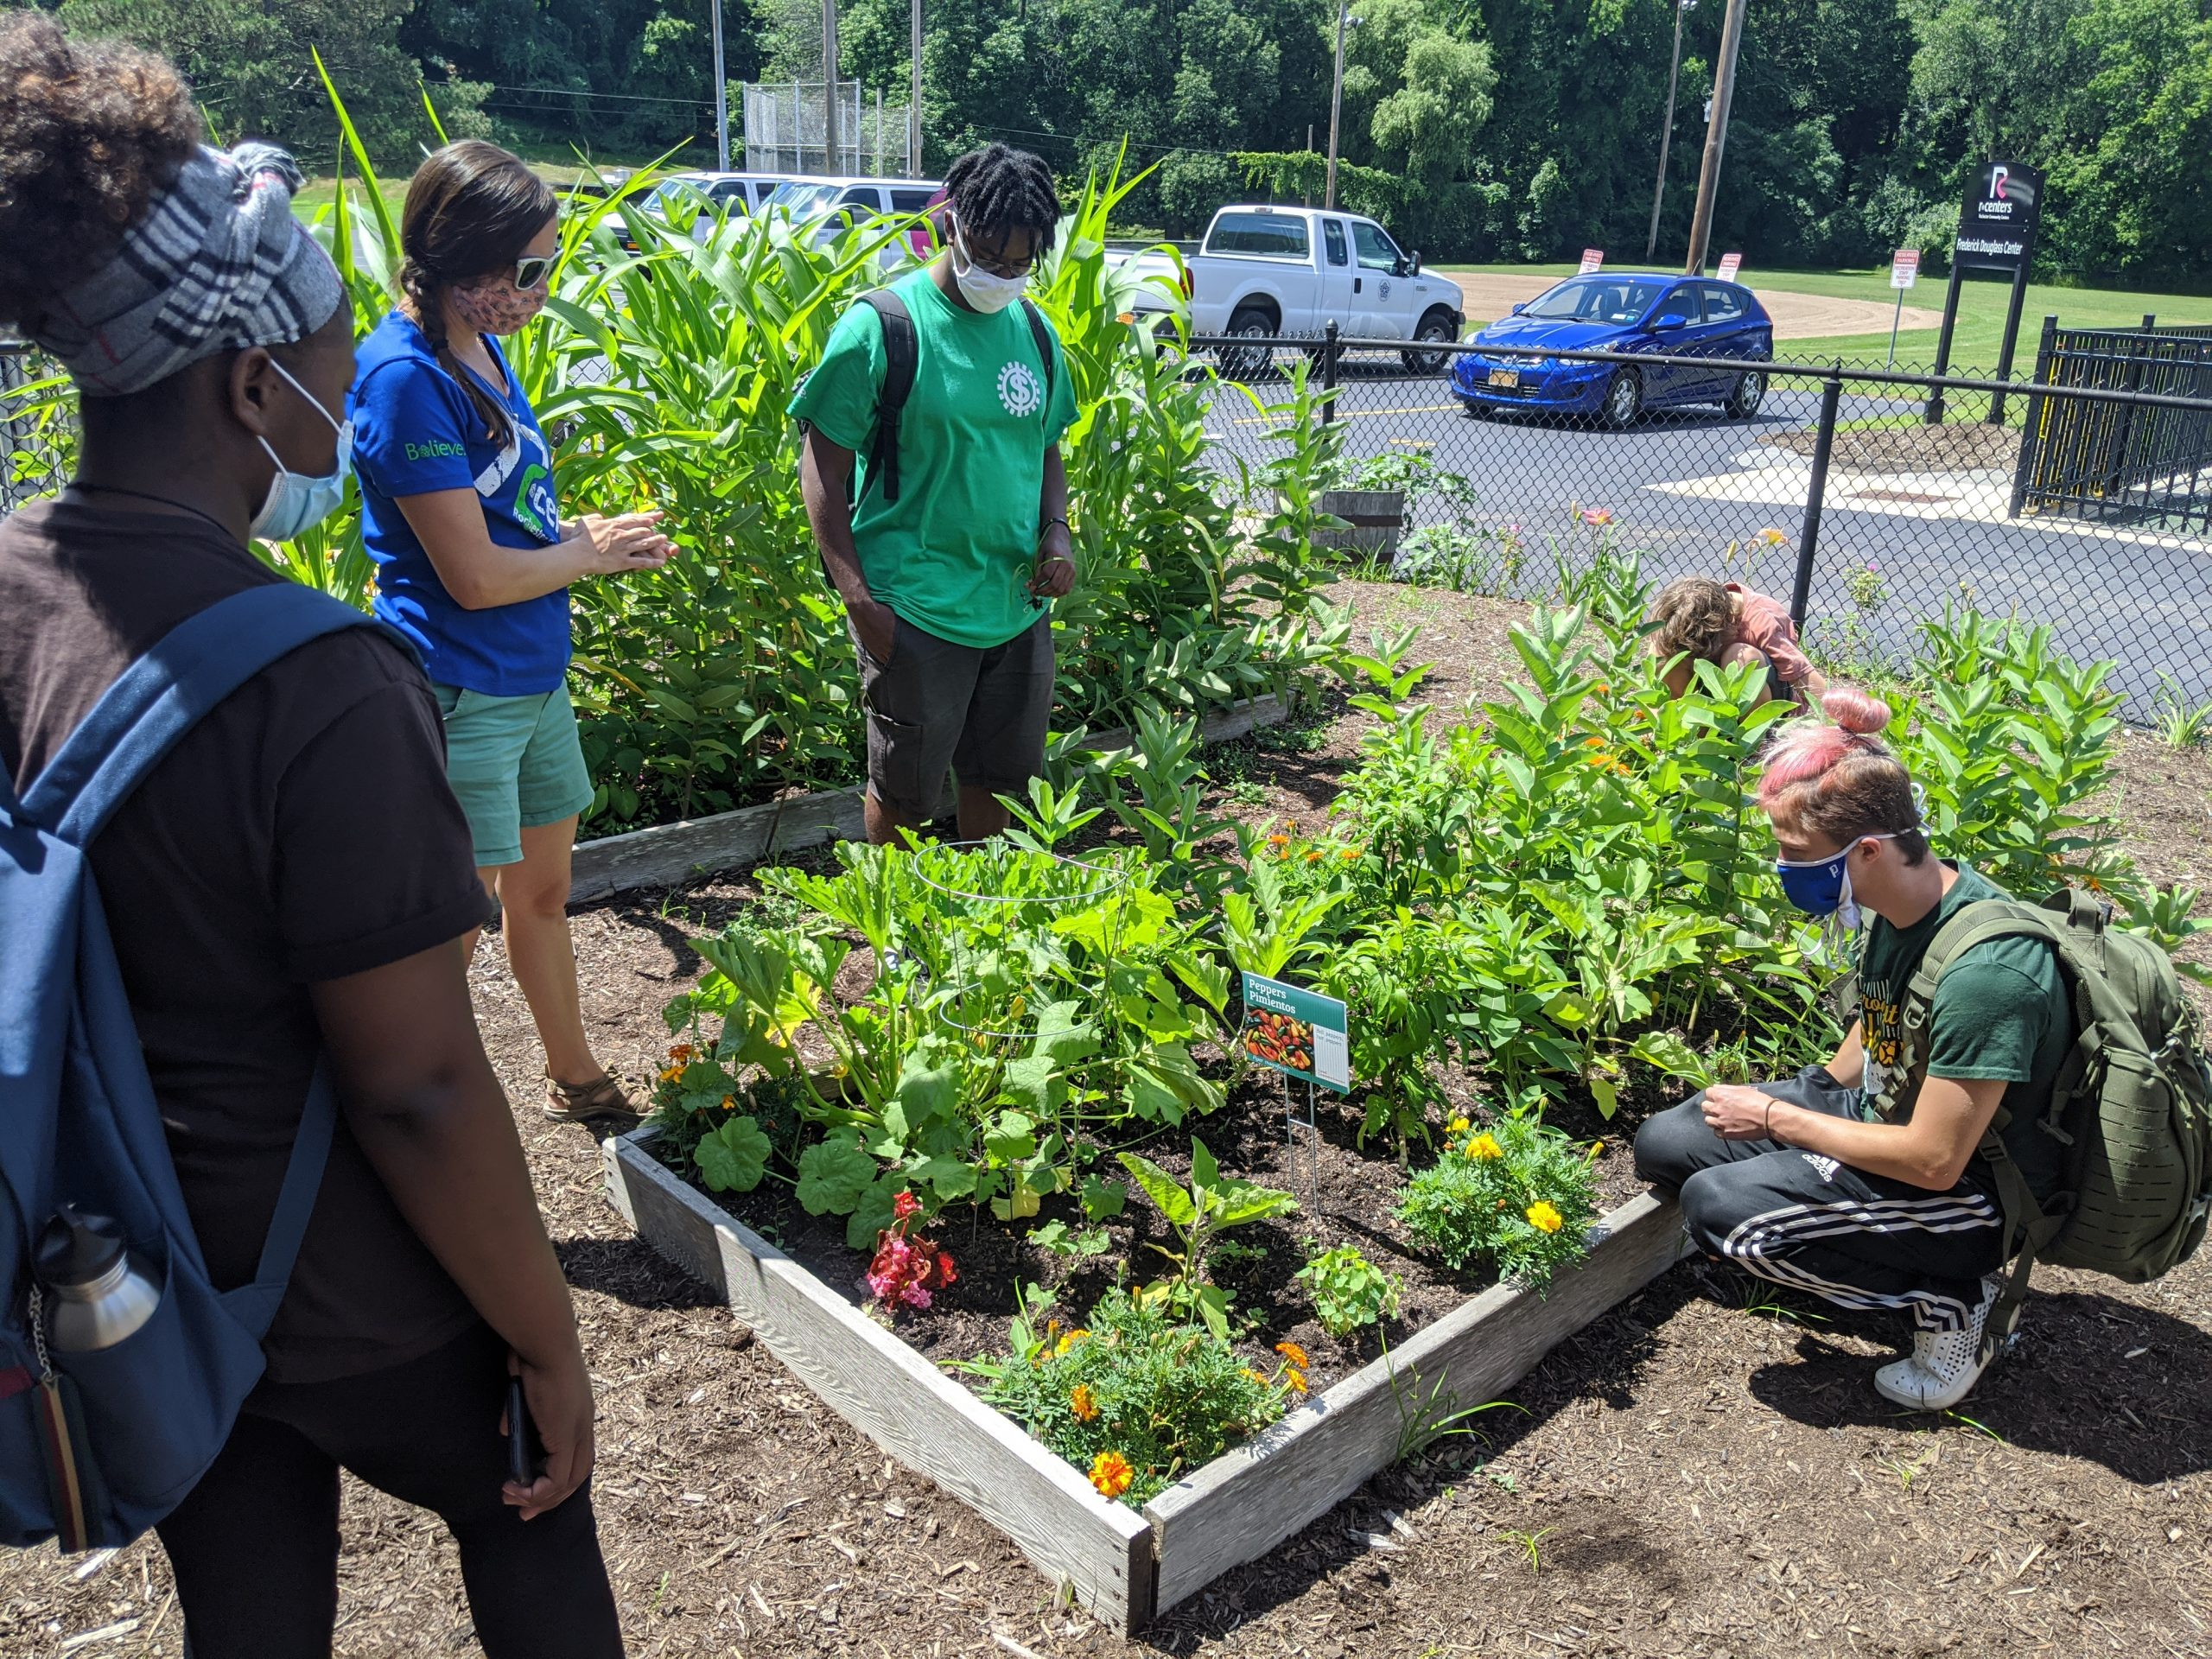 Urban Ecologists visit many community gardens, learning about the importance of companion planting and other gardening practices.